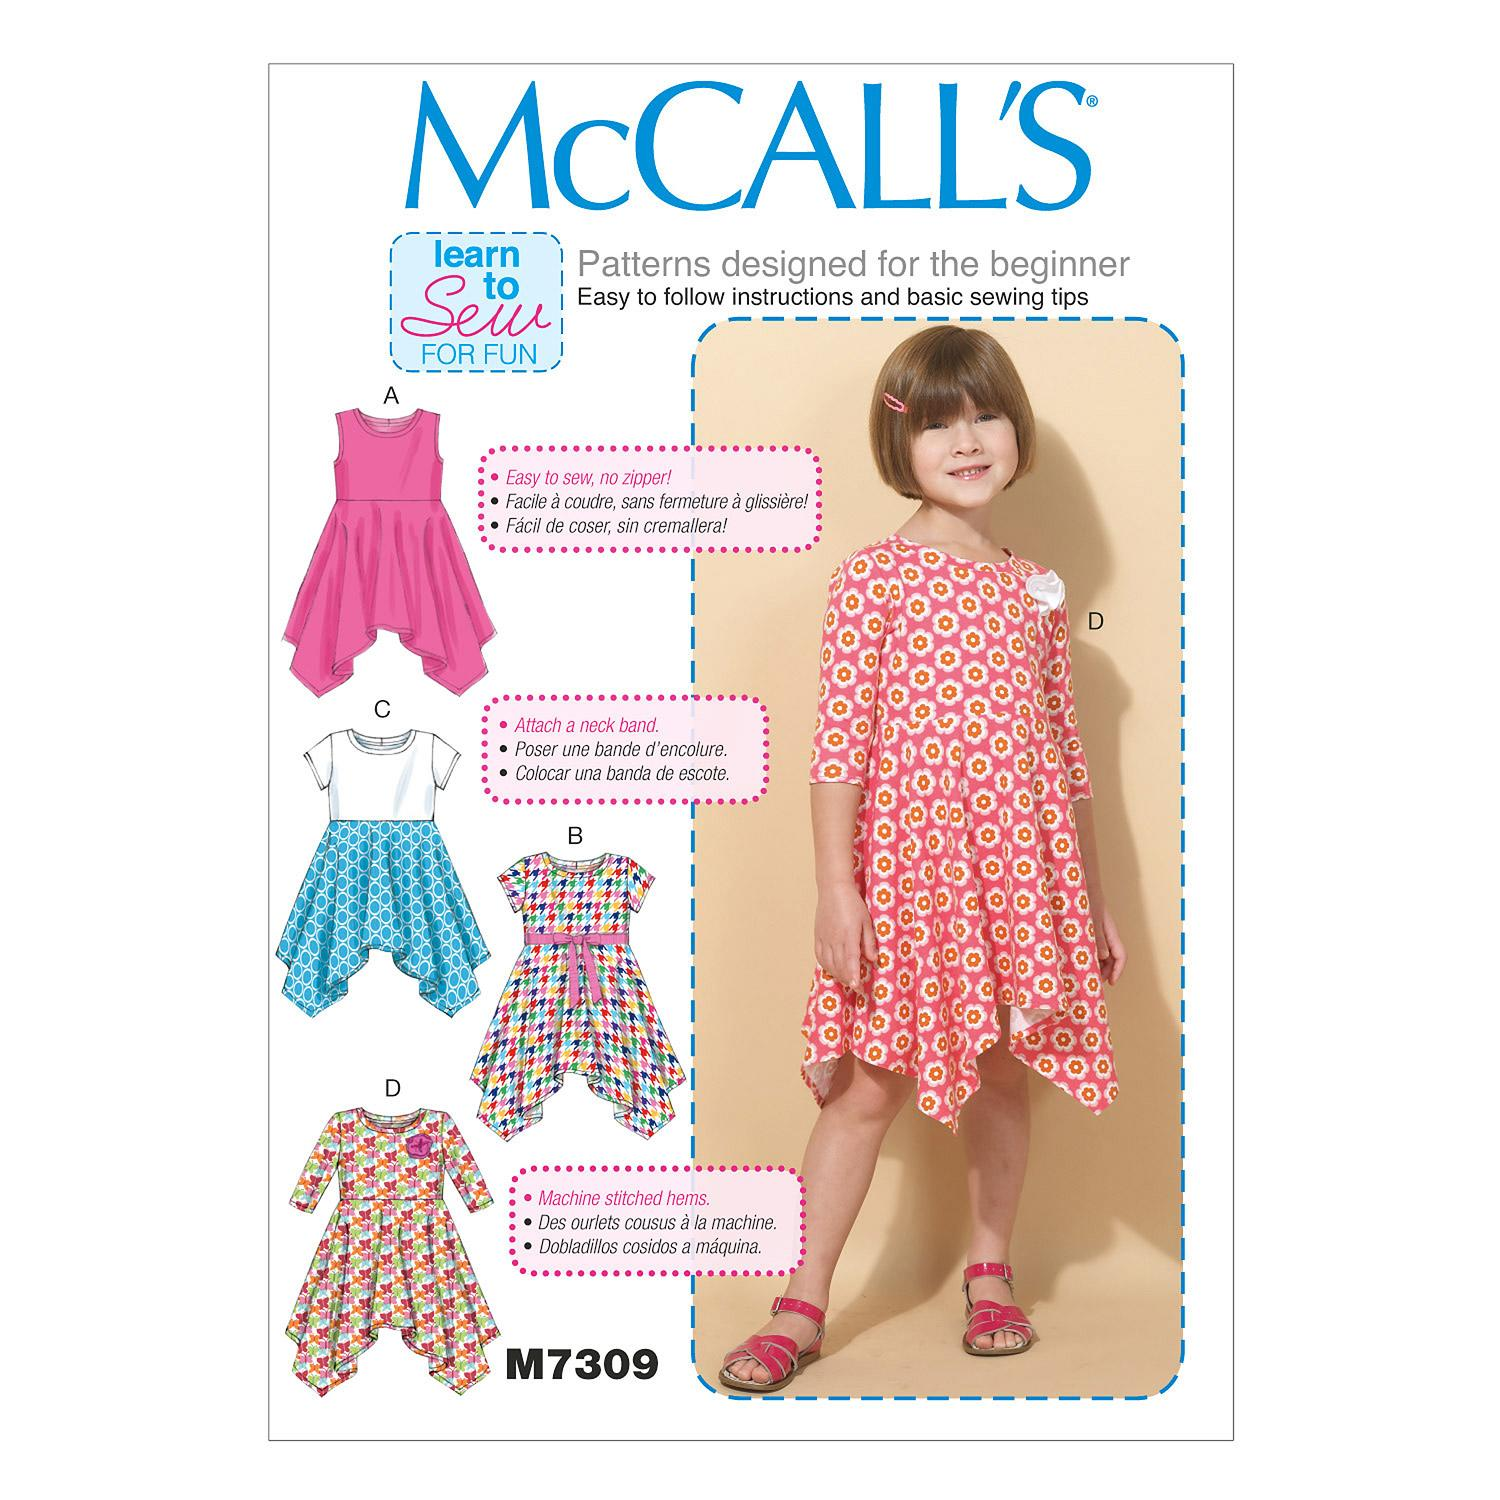 McCalls M7309 Children, Girls/Boys, Learn To Sew for Fun